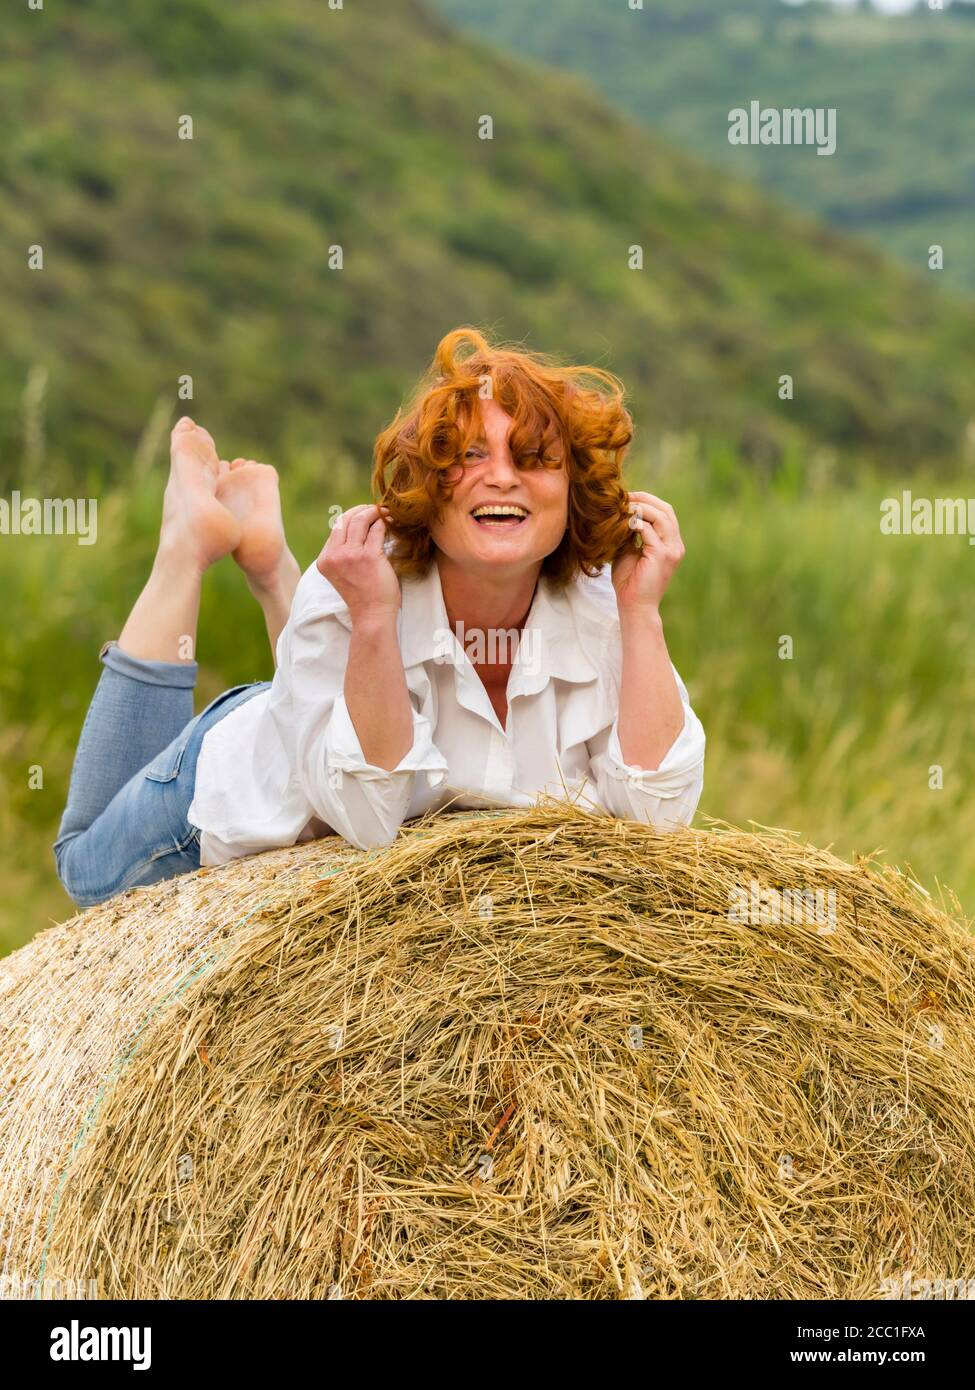 Redhaired woman on hay haystack Stock Photo